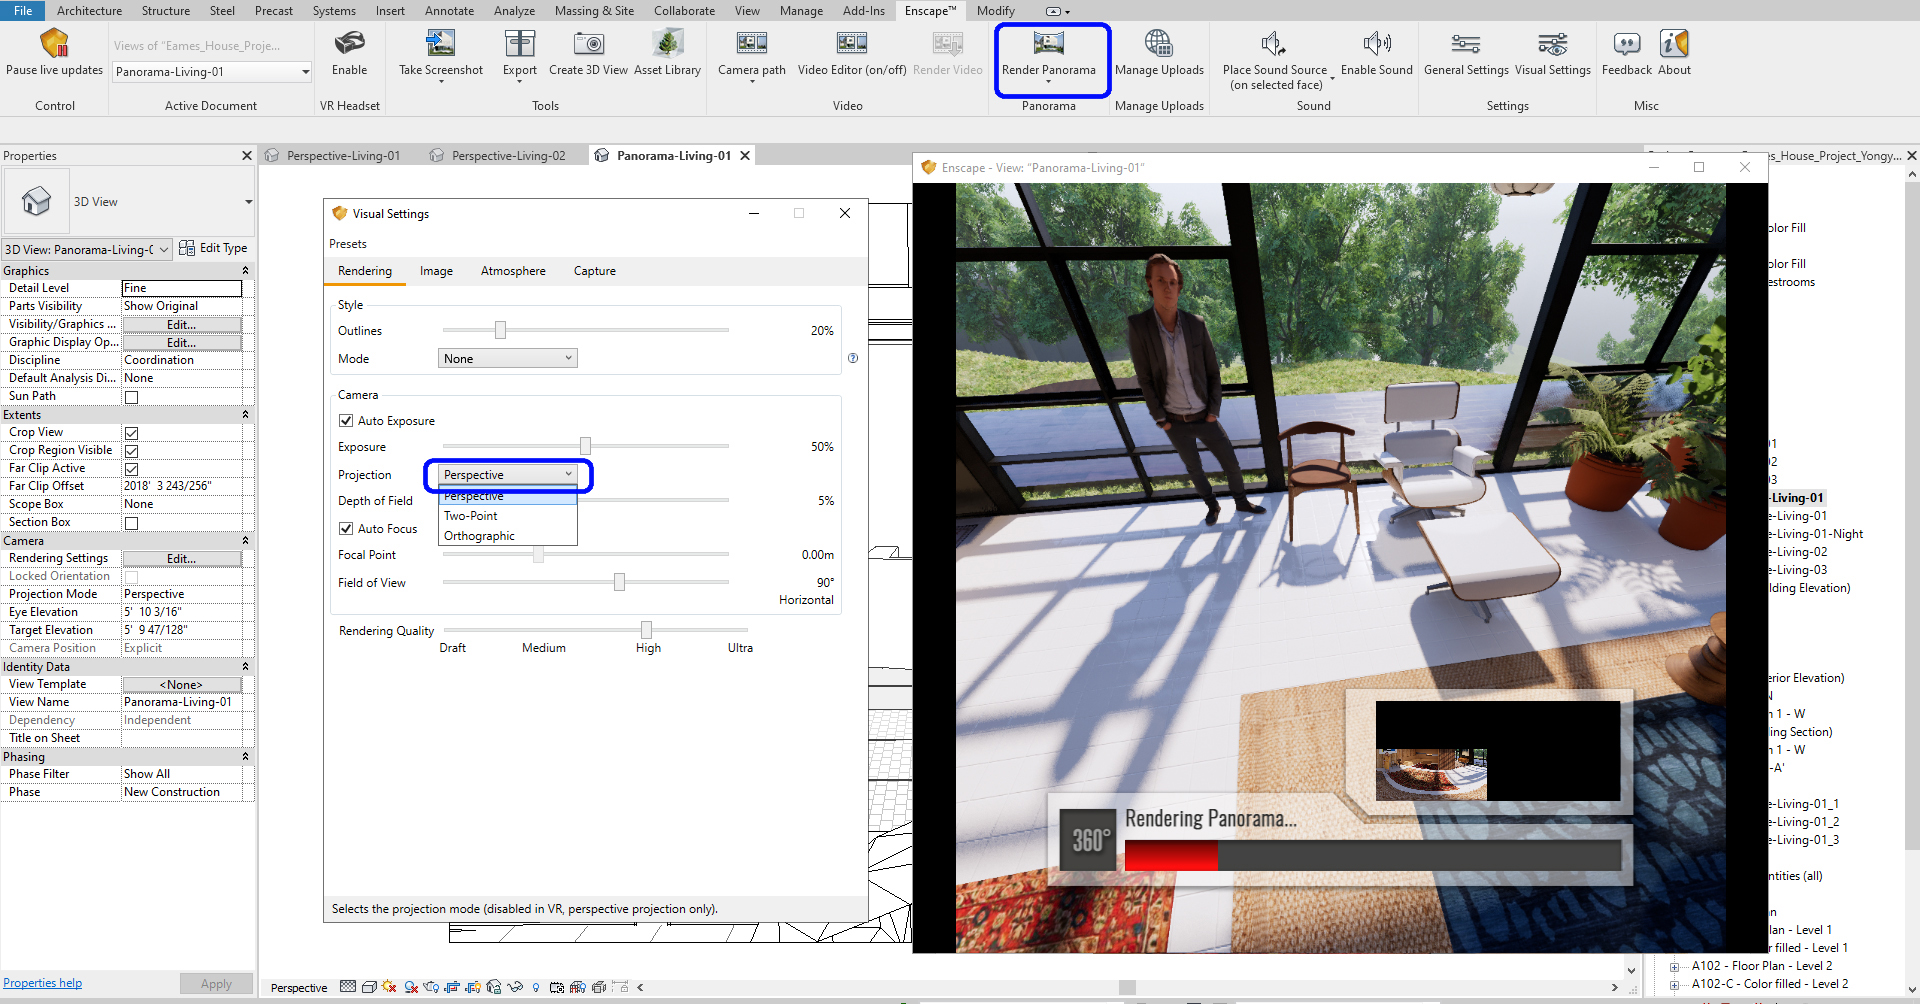 It indicates how to set for a rendered panorama view.